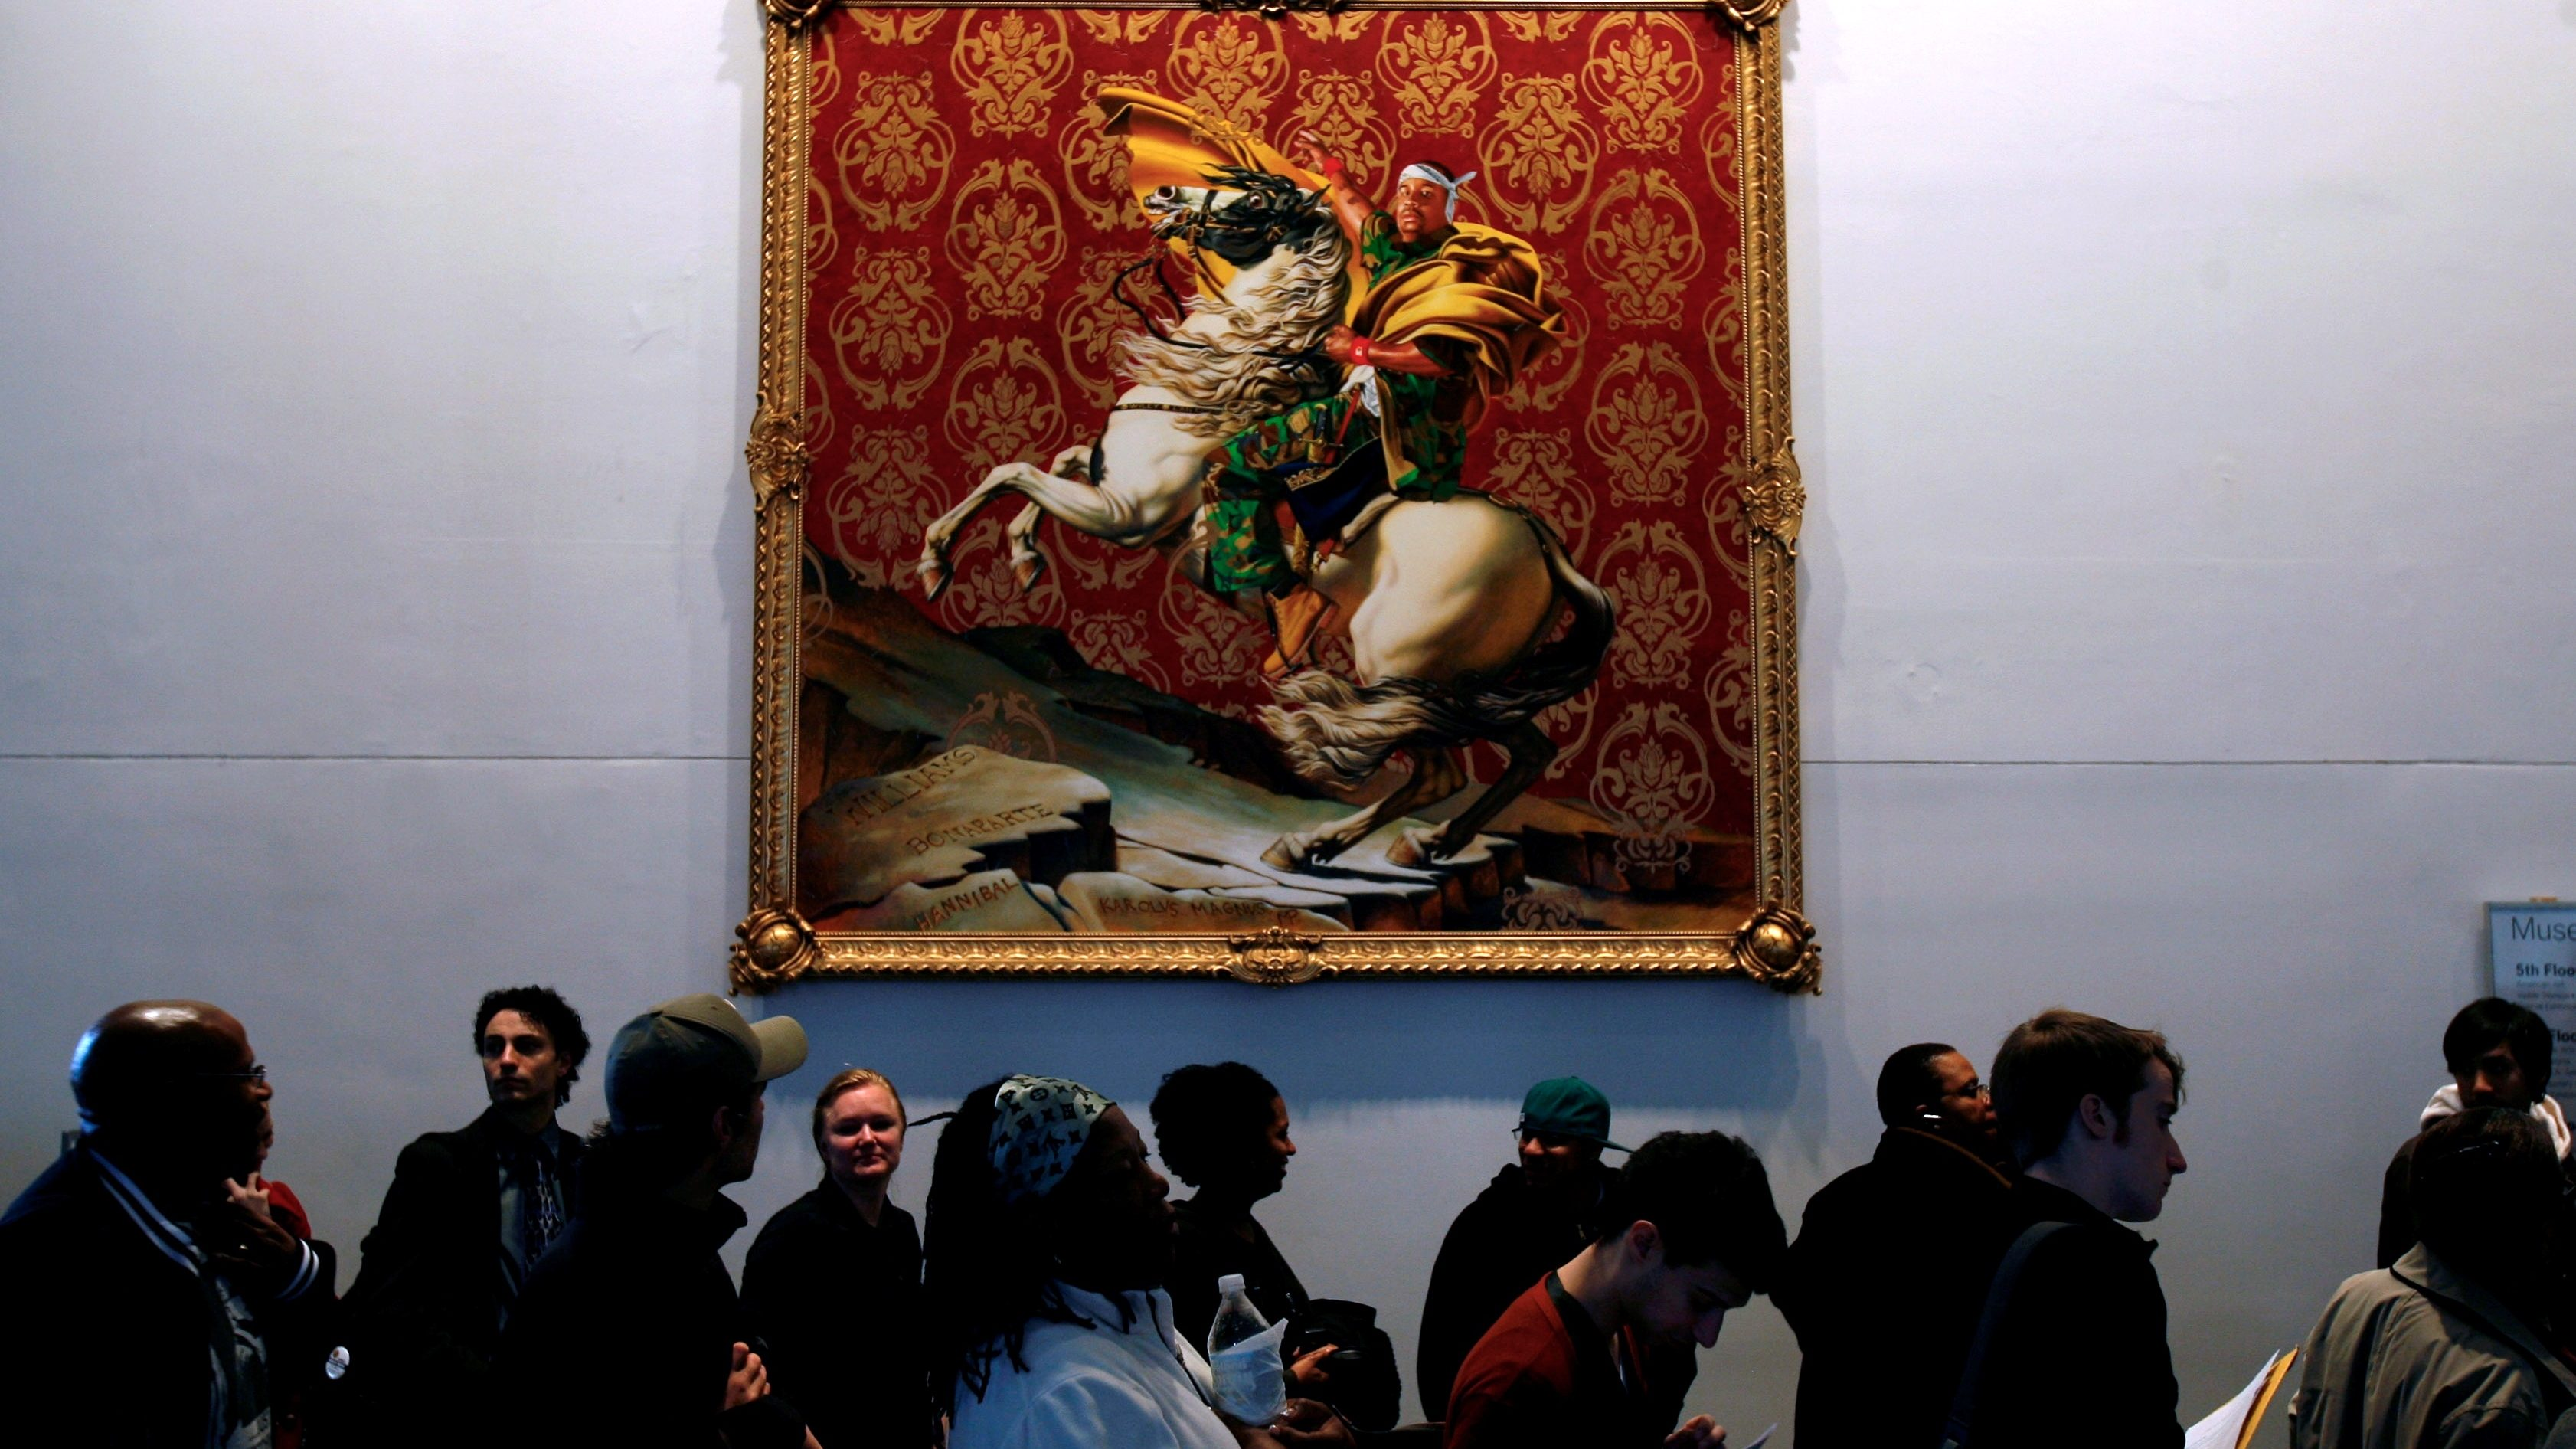 A long line of voters moves slowly past a painting by Kehinde Wiley at a polling site in the Brooklyn Museum of Art in New York, Tuesday, Nov. 4, 2008.  (AP Photo/Seth Wenig)